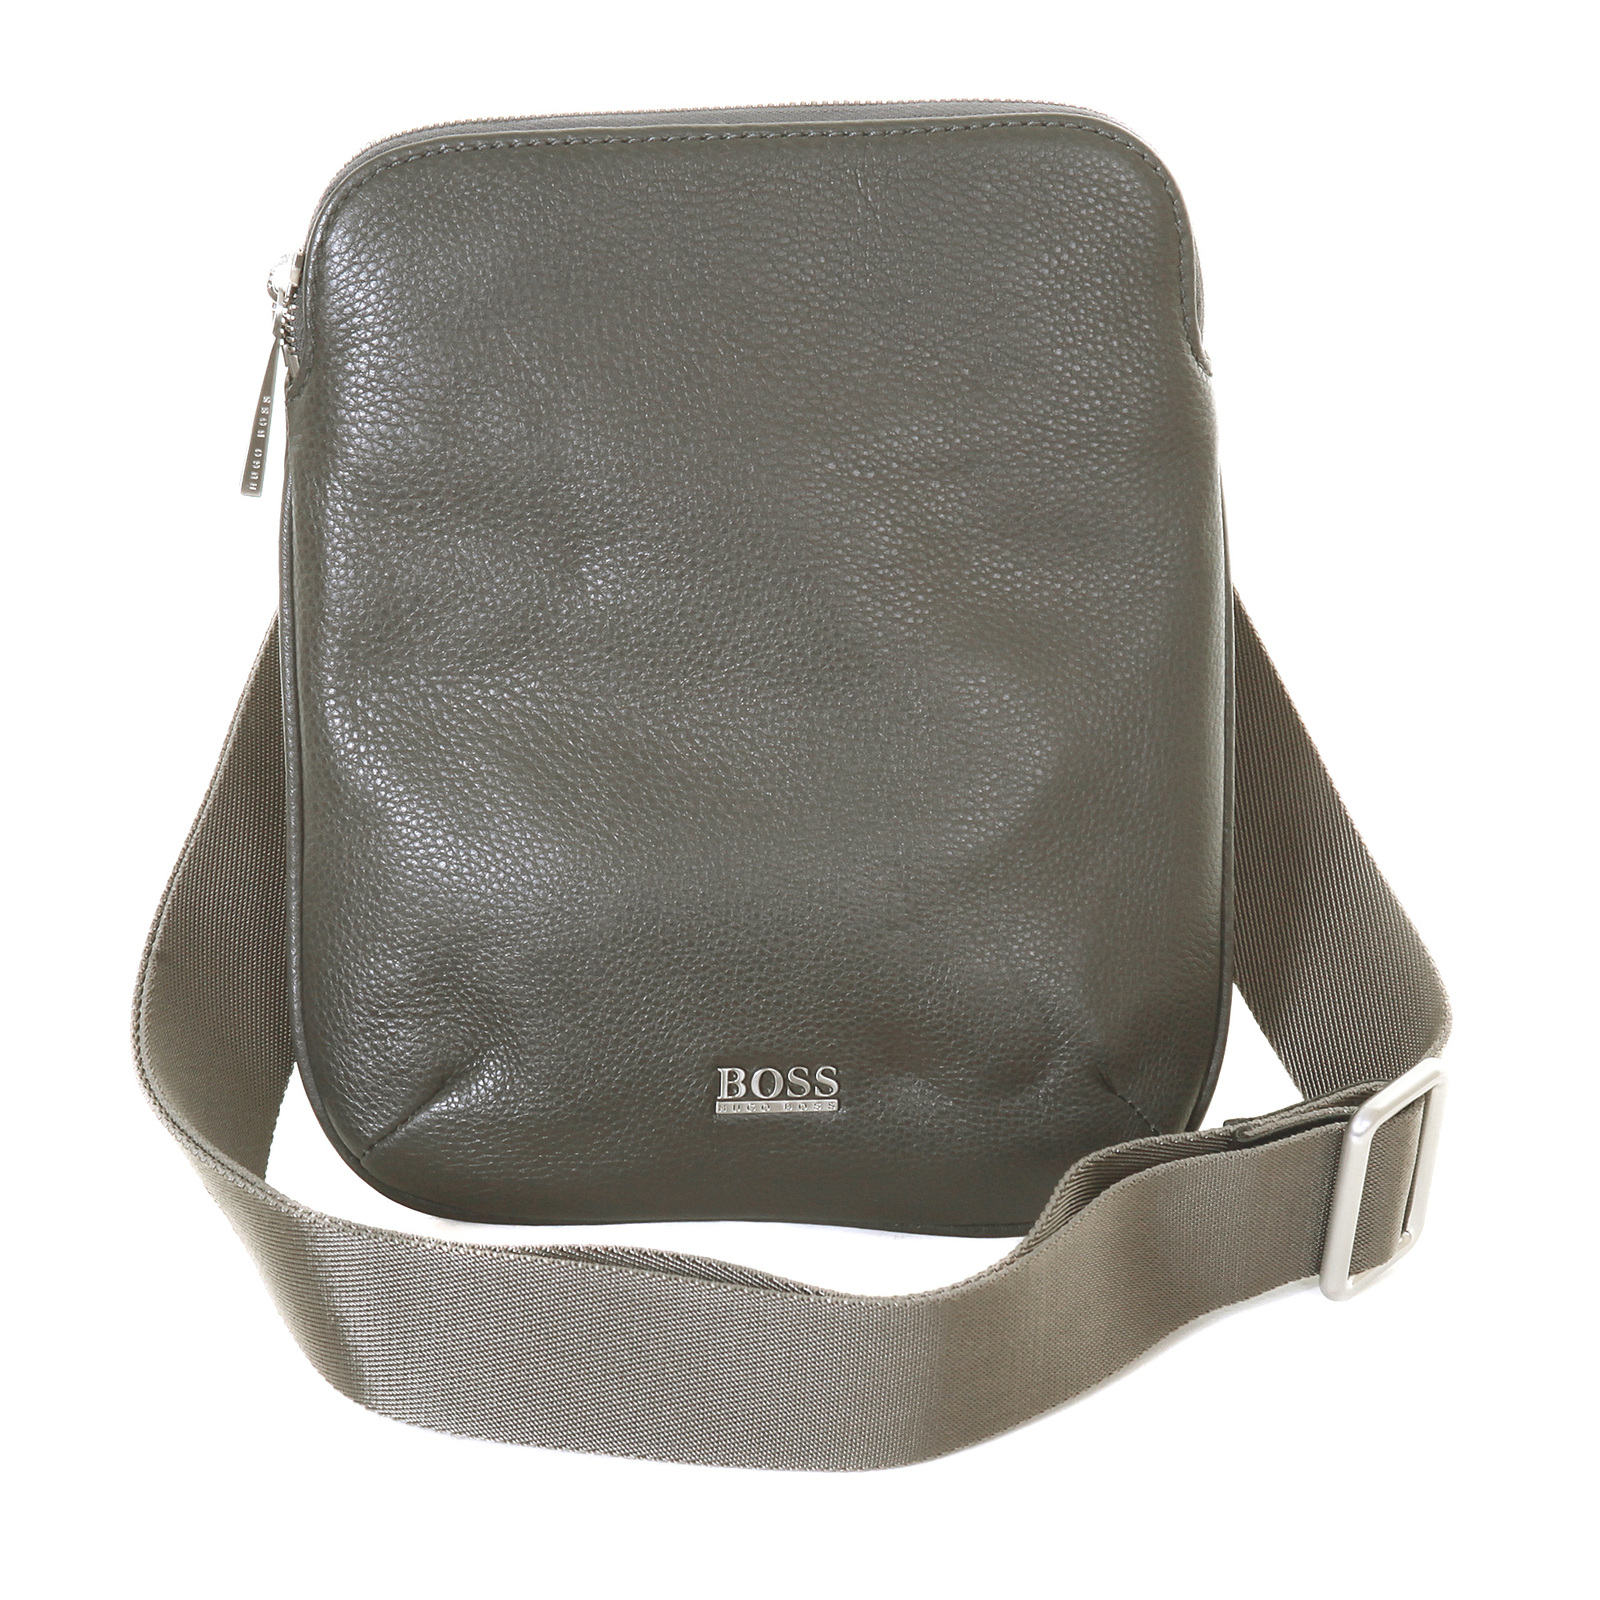 Hugo Boss Black label mens grey leather 50205406 Bussolo reporter bag  BOSS0969 at Togged Clothing 72180a1af7d40